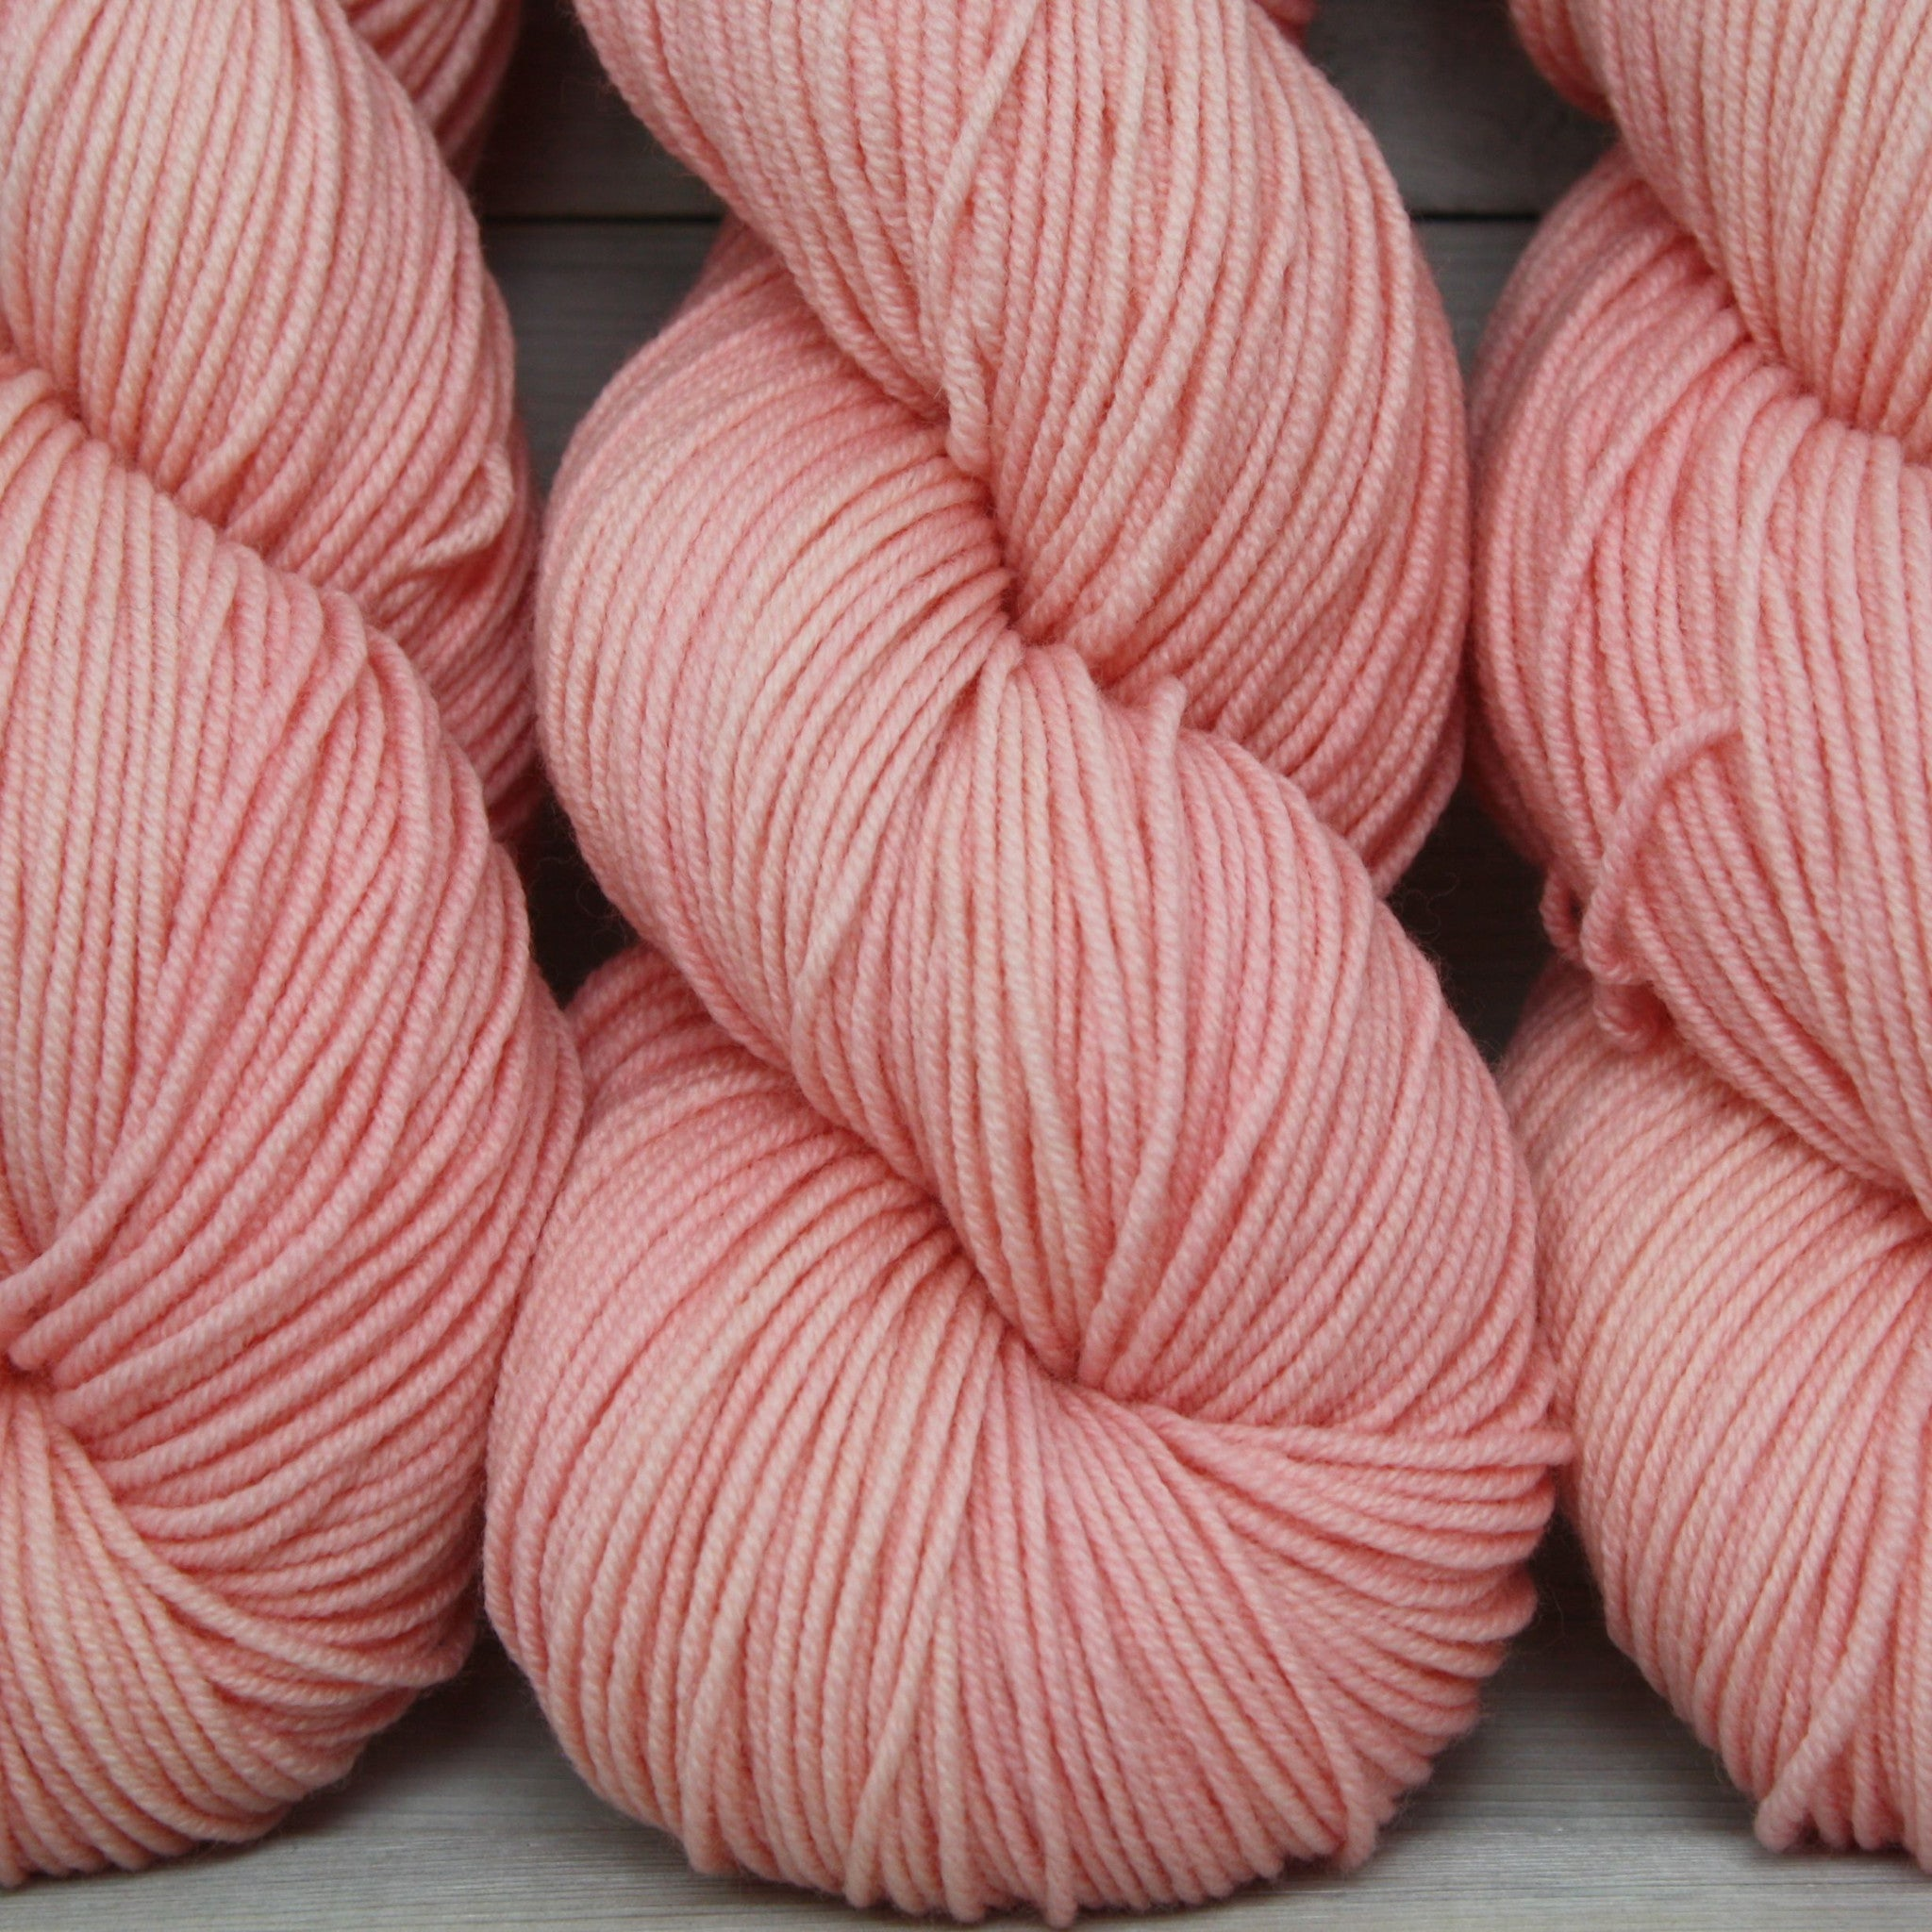 Aspen Sport Yarn | Colorway: Ballet Slipper | Overstock